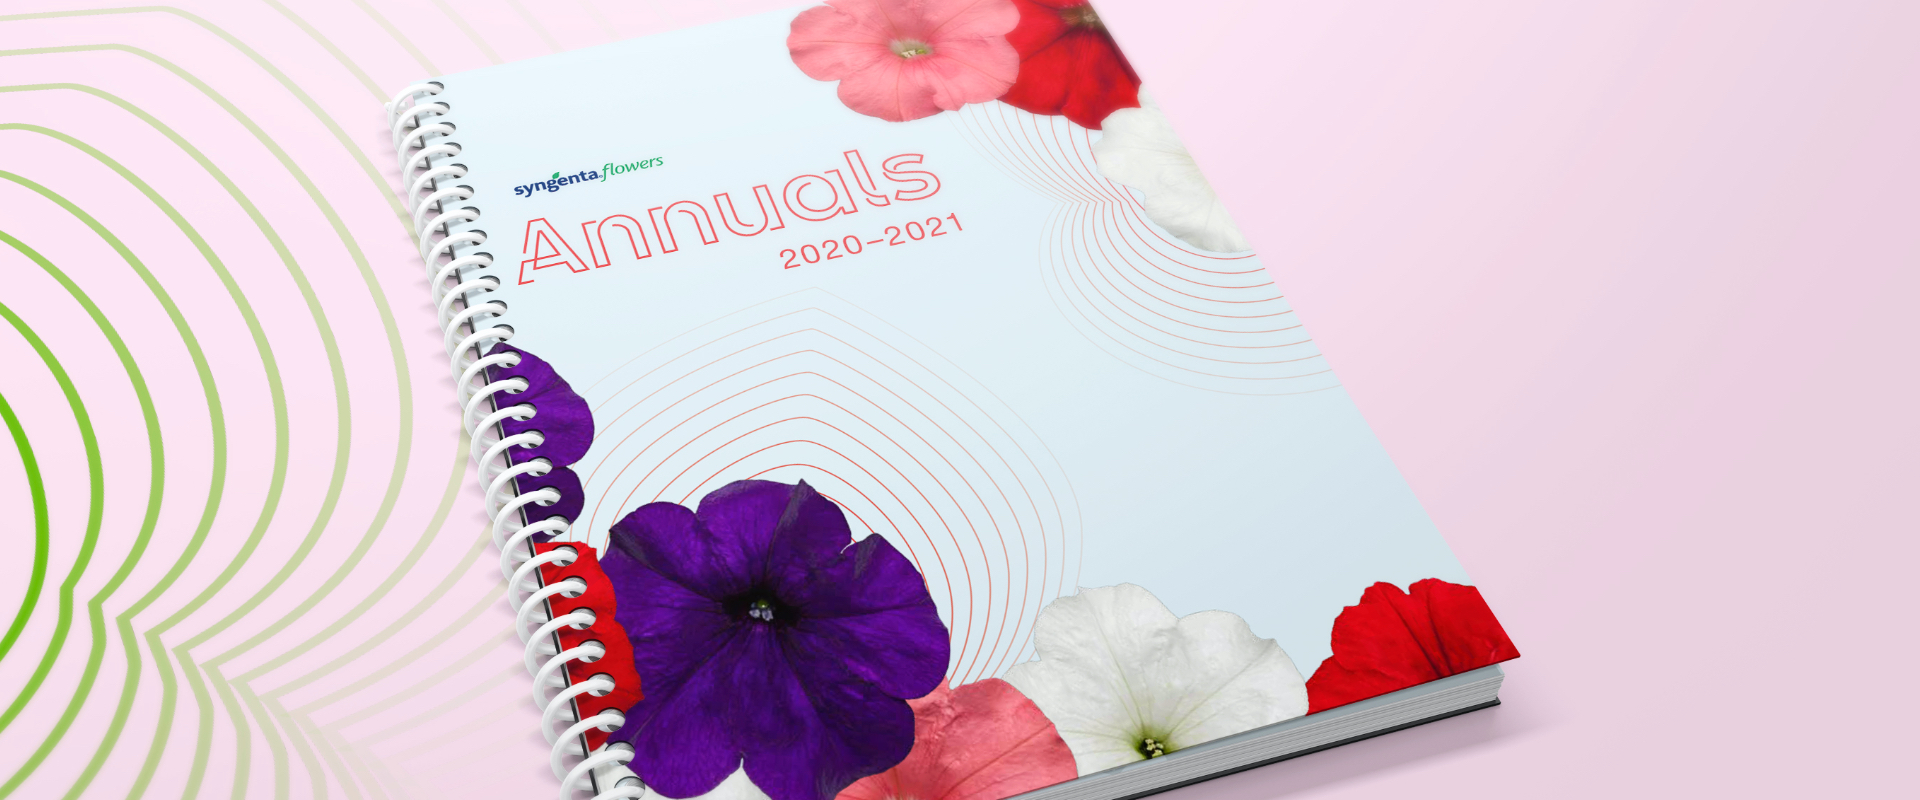 Front cover of Syngenta Flowers 2020-2021 annual catalog